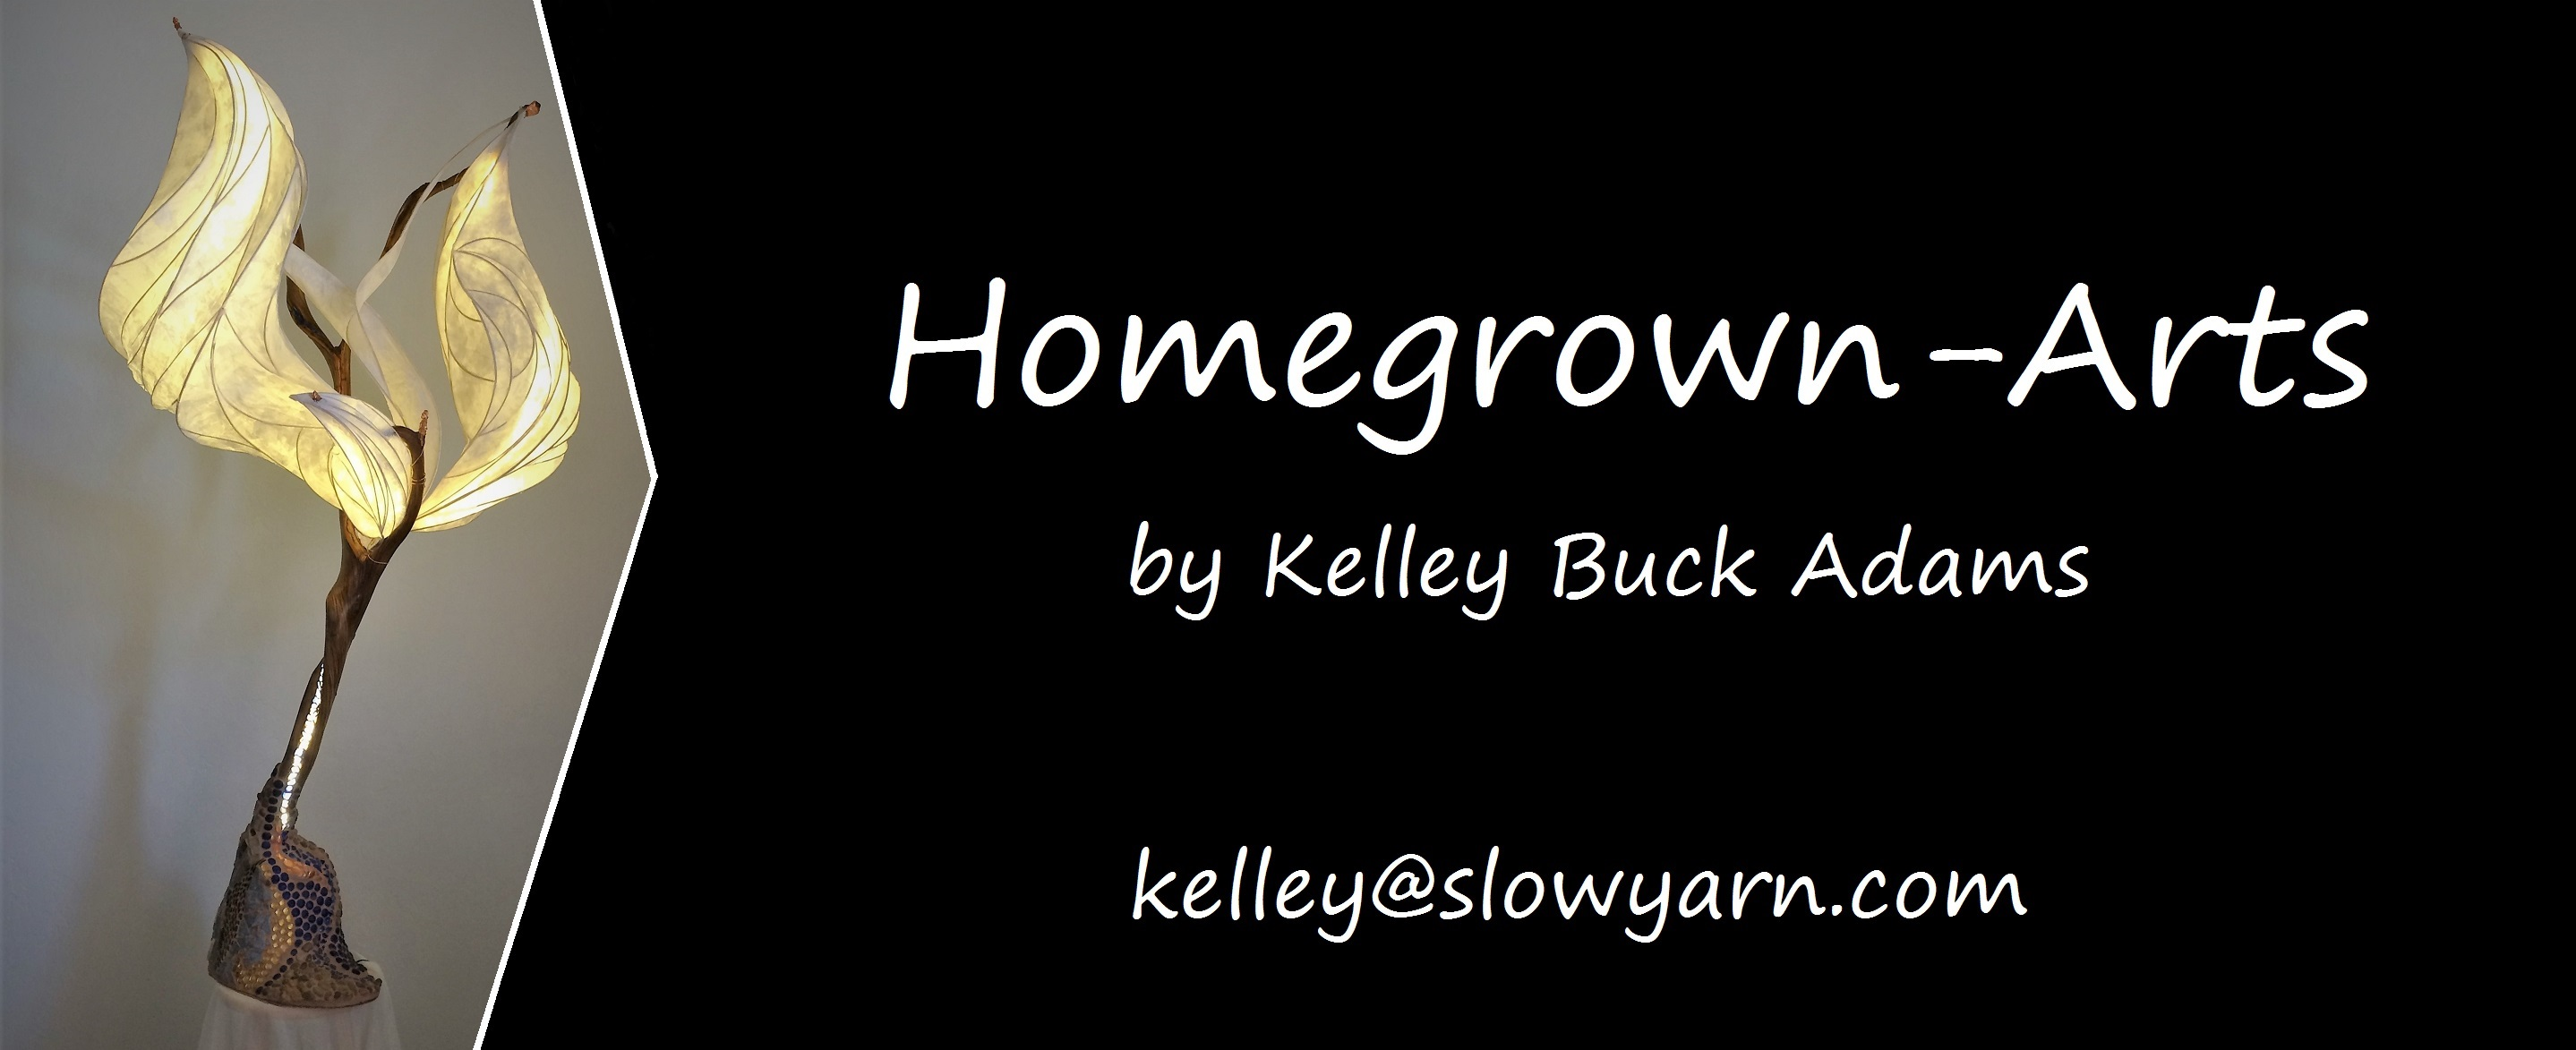 Homegrown-Arts